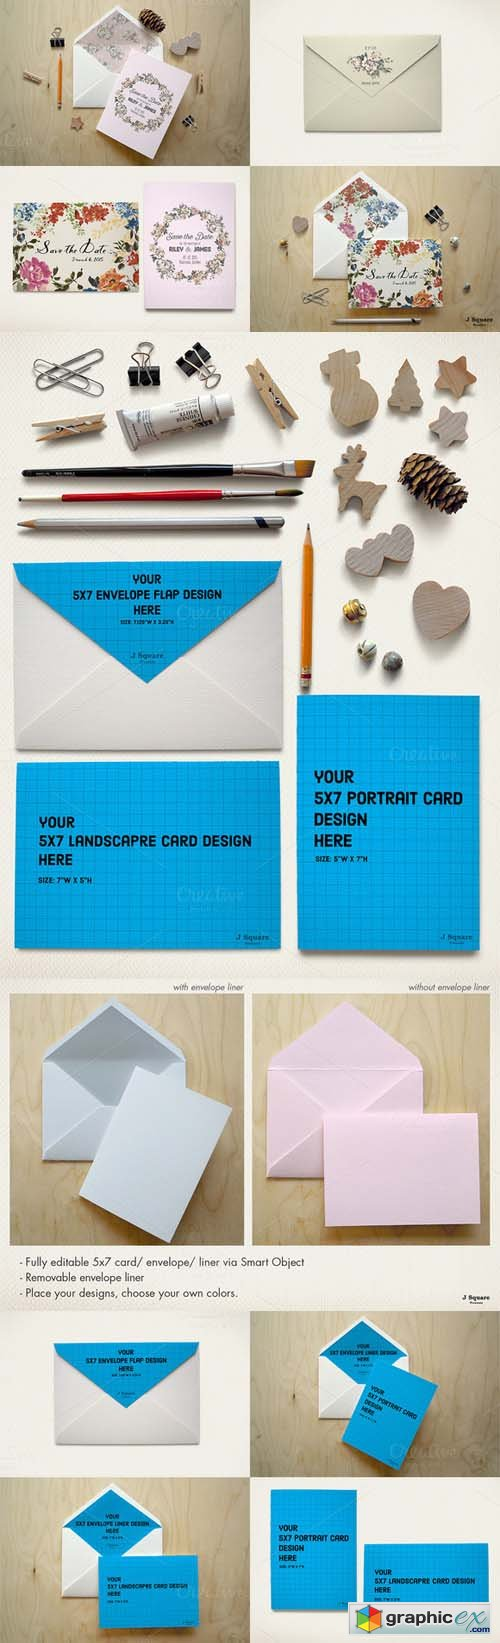 5x7 Card/Envelope/Objects Mock Up